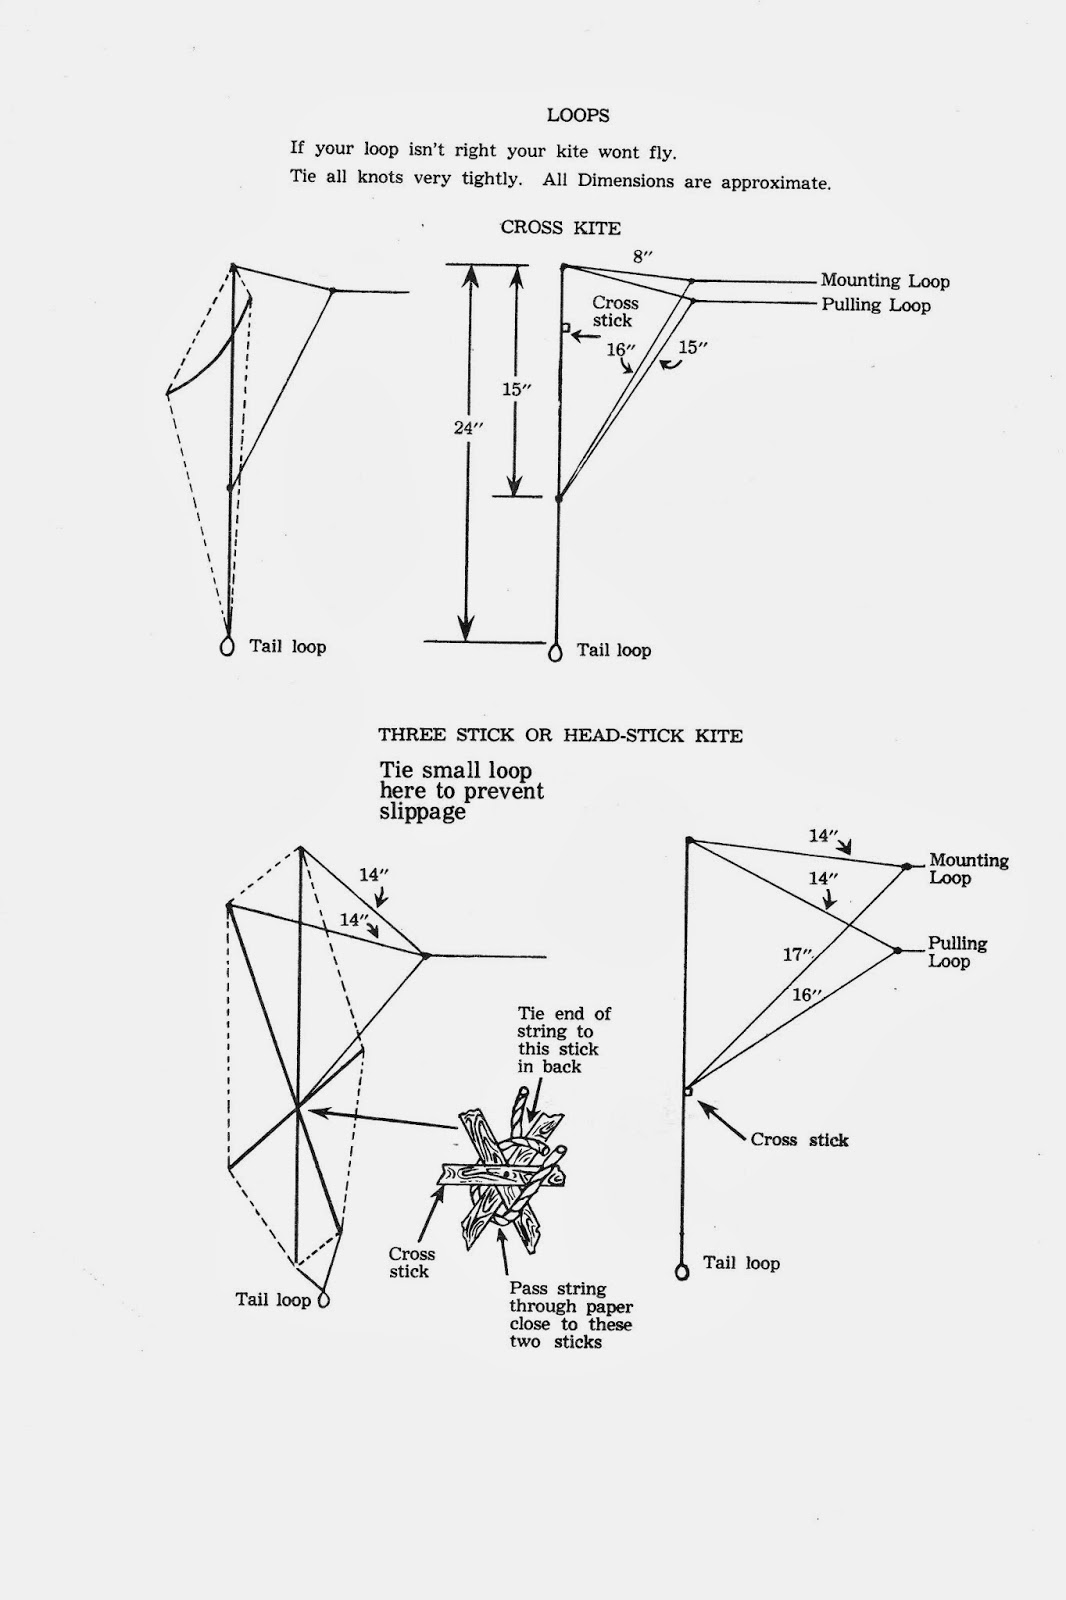 Bermy Bubbles Knot Me Kite Loops Snarls Tying A Tie Diagram Credit Bermuda Kites How To Make And Fly Them By Frank Watlington